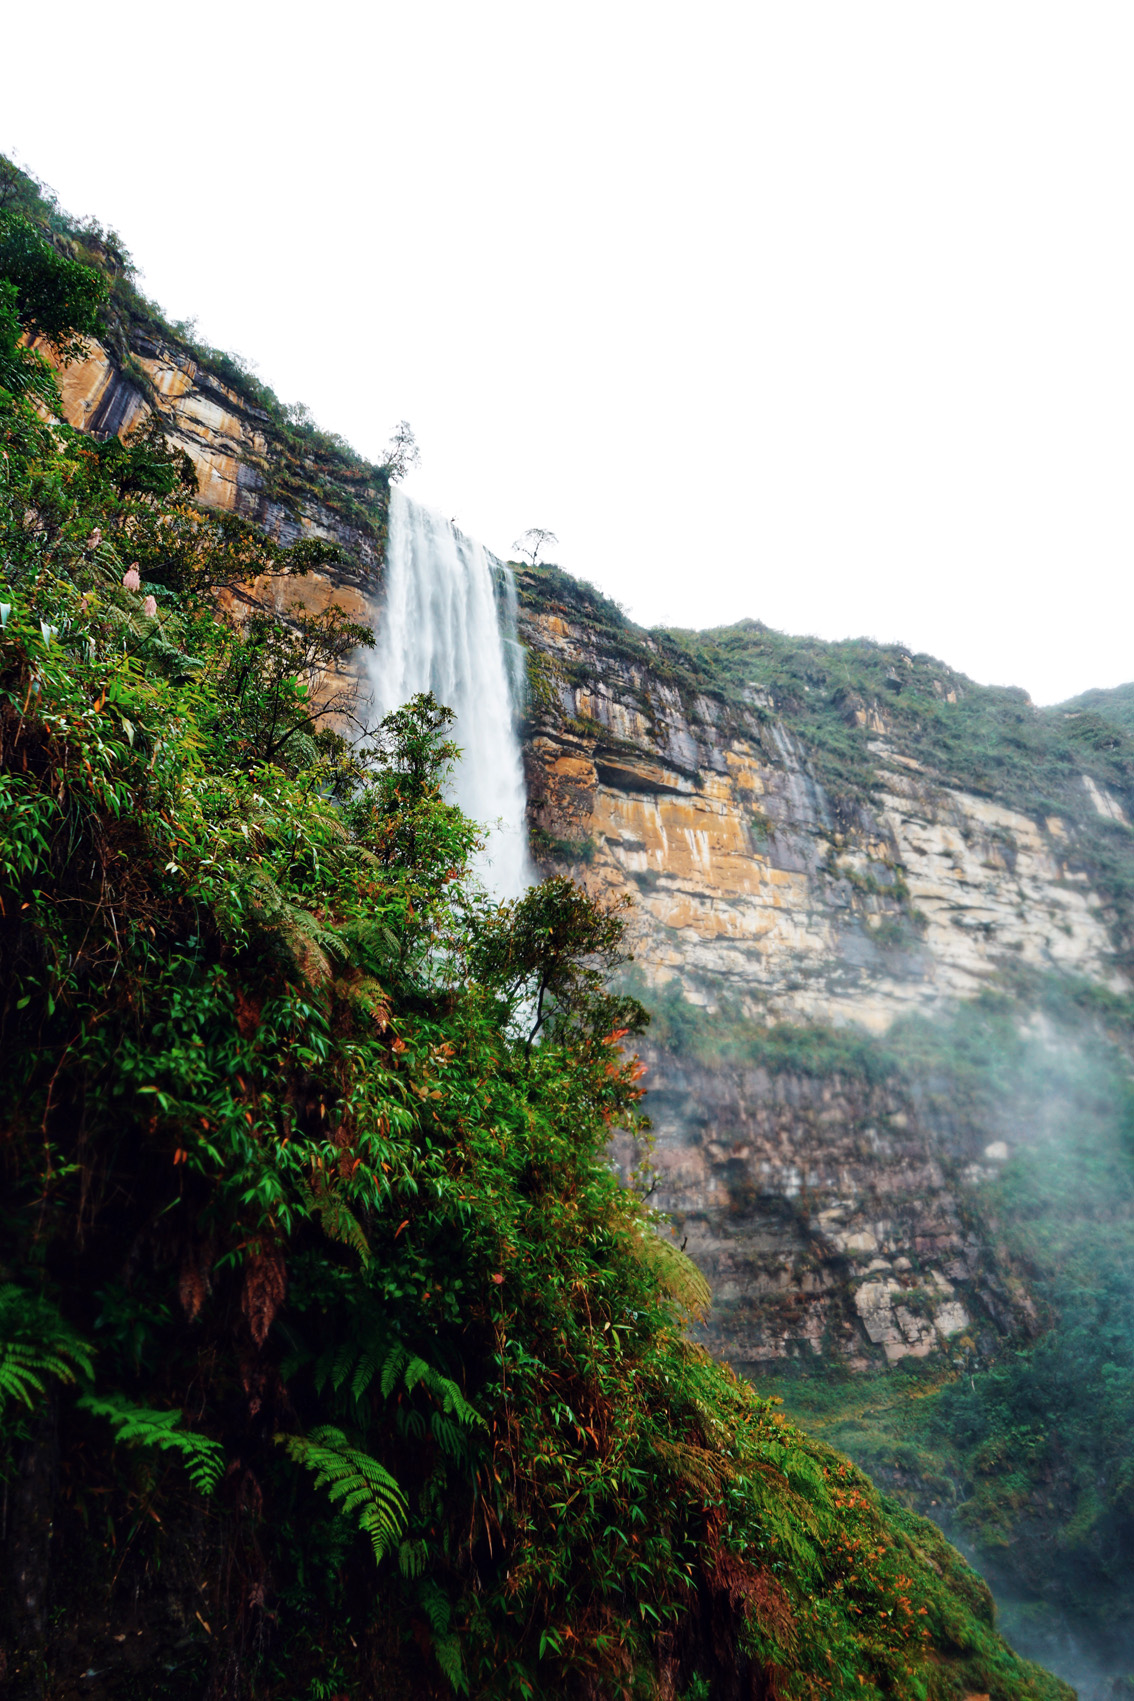 32 Lesser known places in Peru: Chachapoyas - a natural paradise to discover.